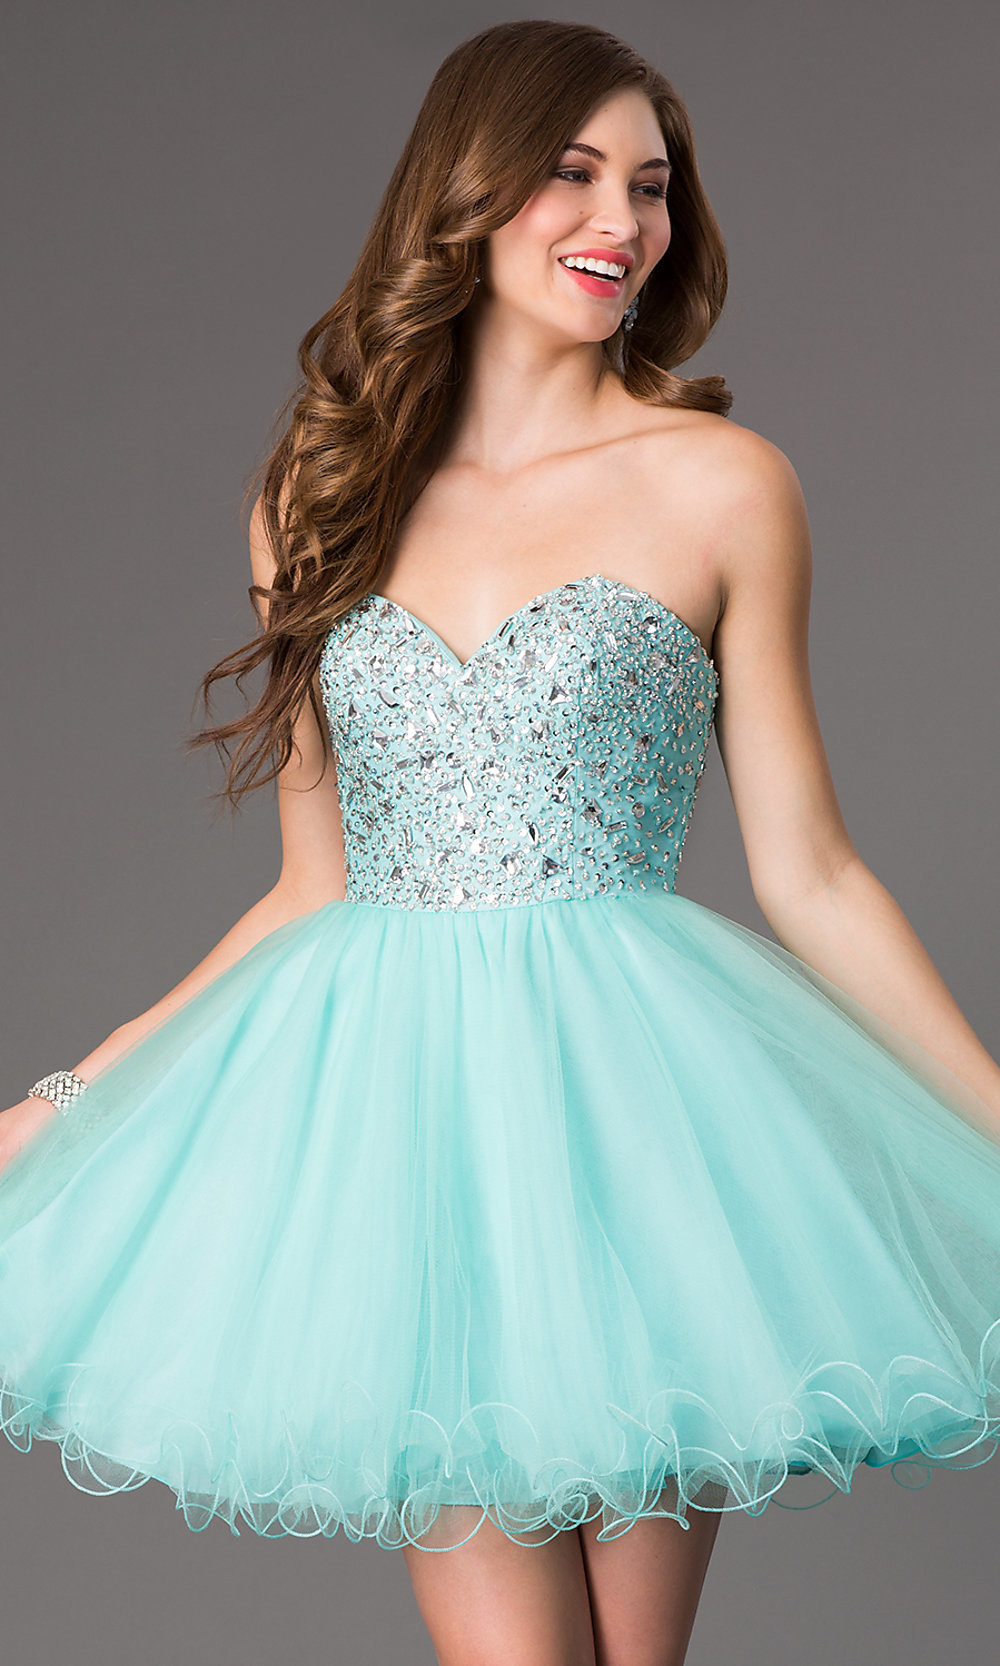 Jewel Embellished Bodice Sweetheart Dress-PromGirl